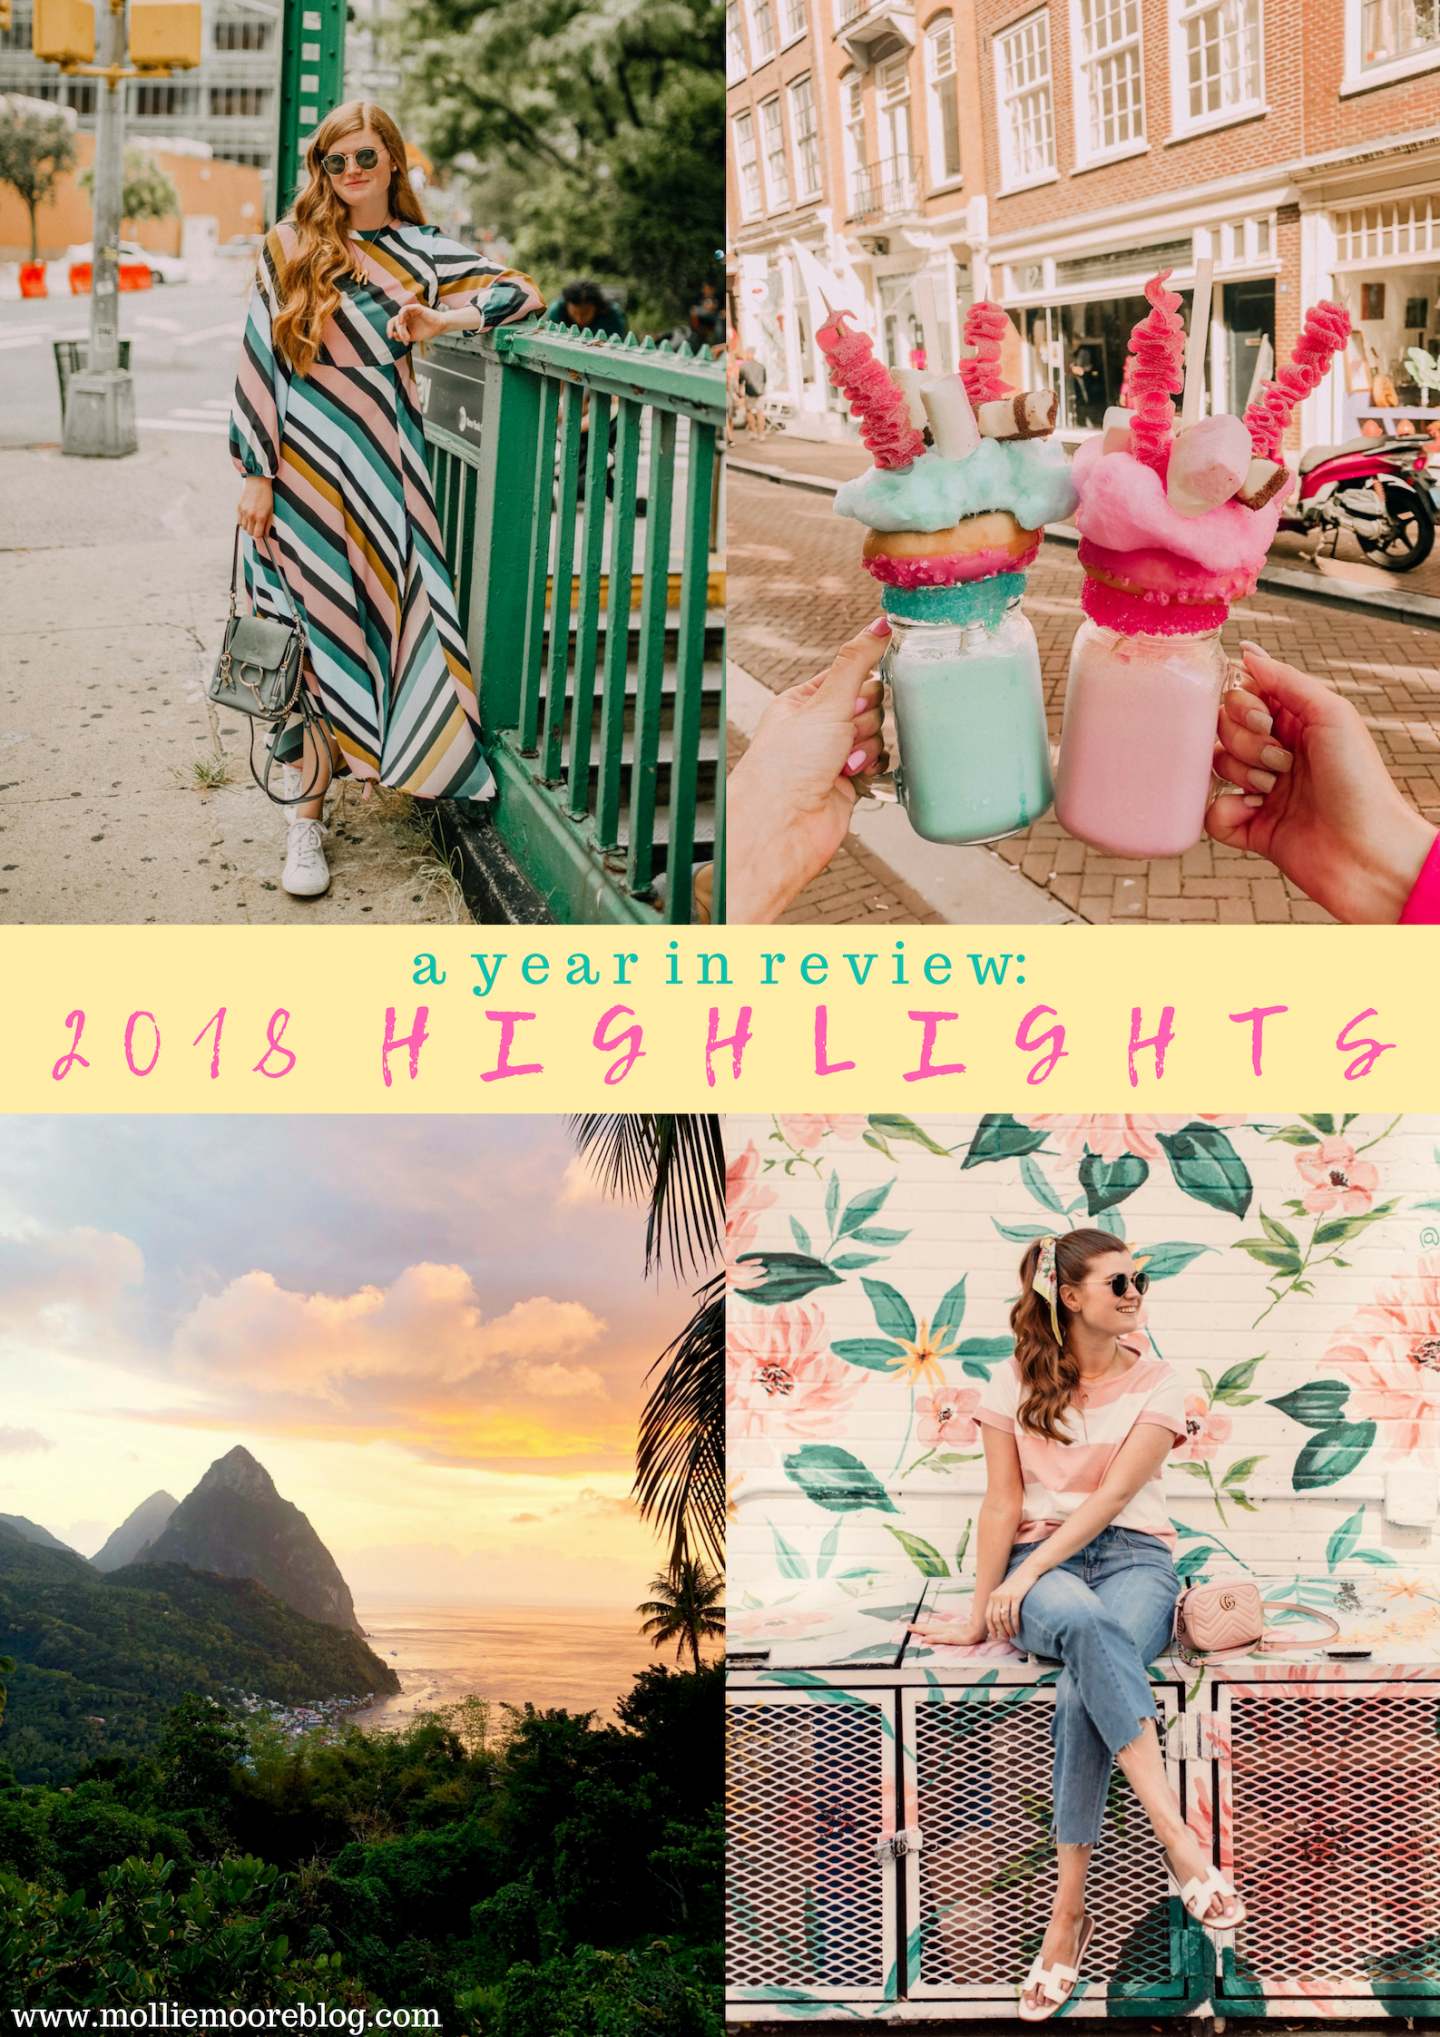 | Top London and US life and style blogger, Mollie Moore shares her 2018 year in review